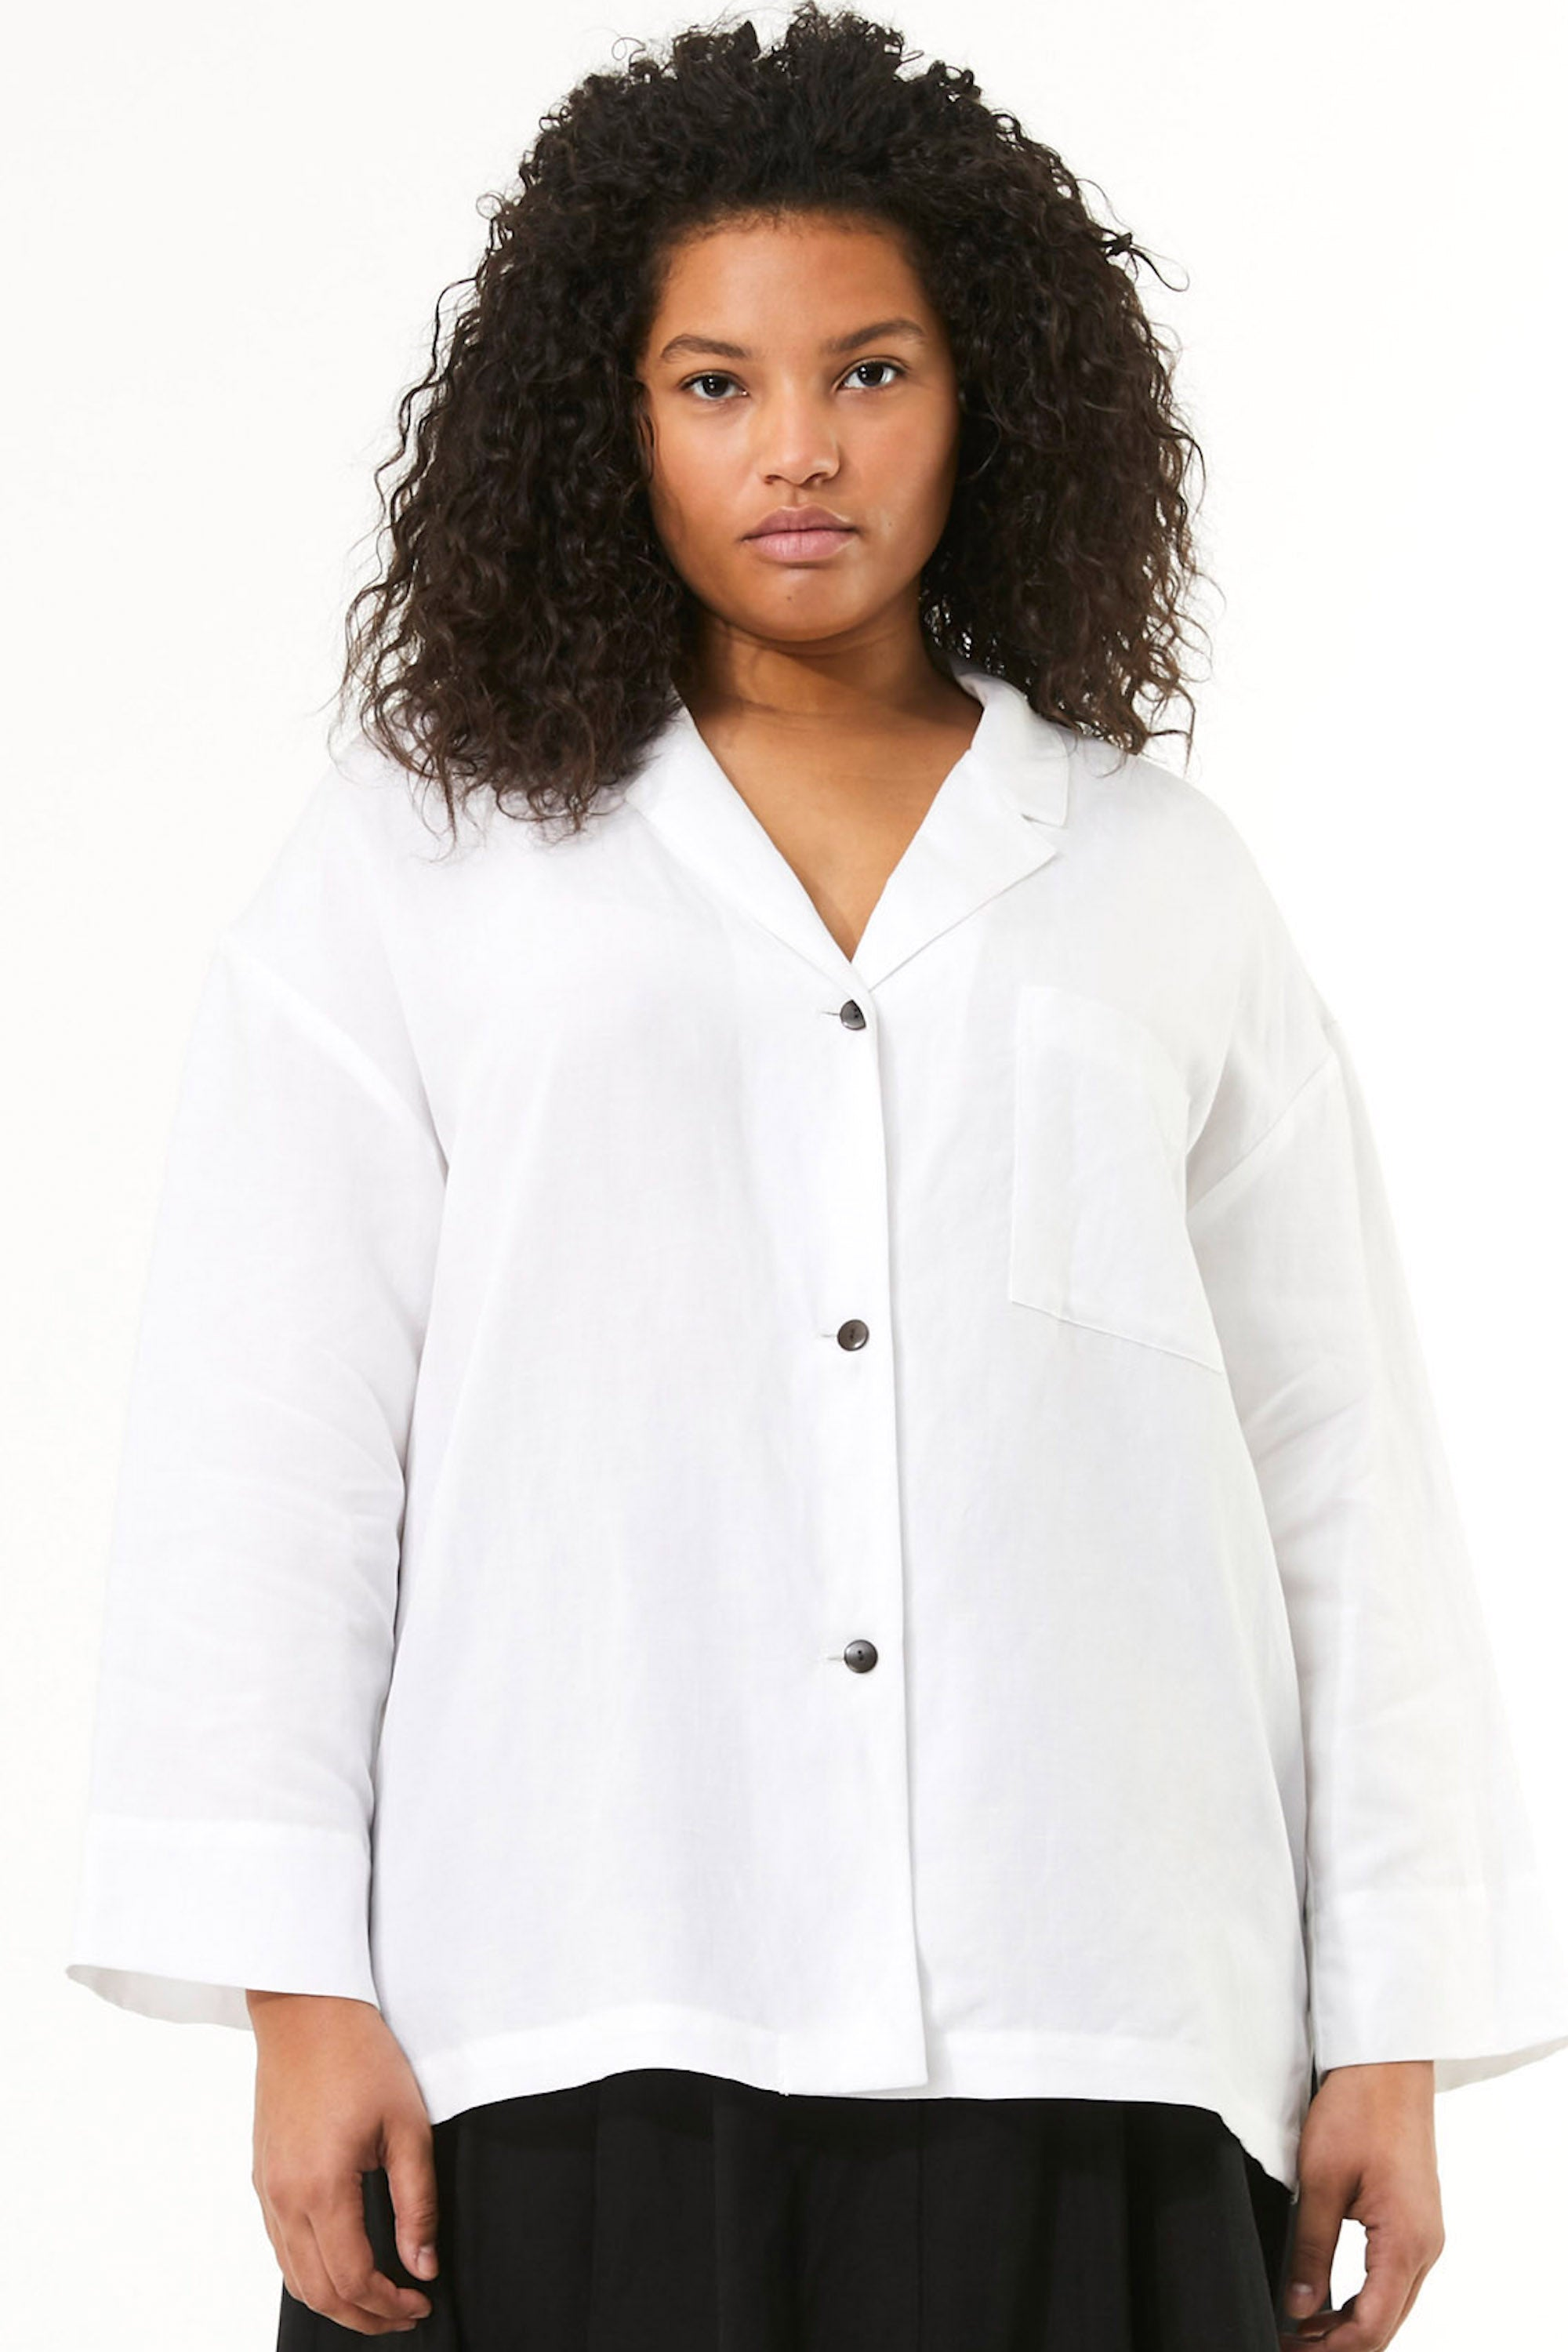 Mara Hoffman Extended White Eleanor Top in Tencel Lyocell and Linen (front detail)